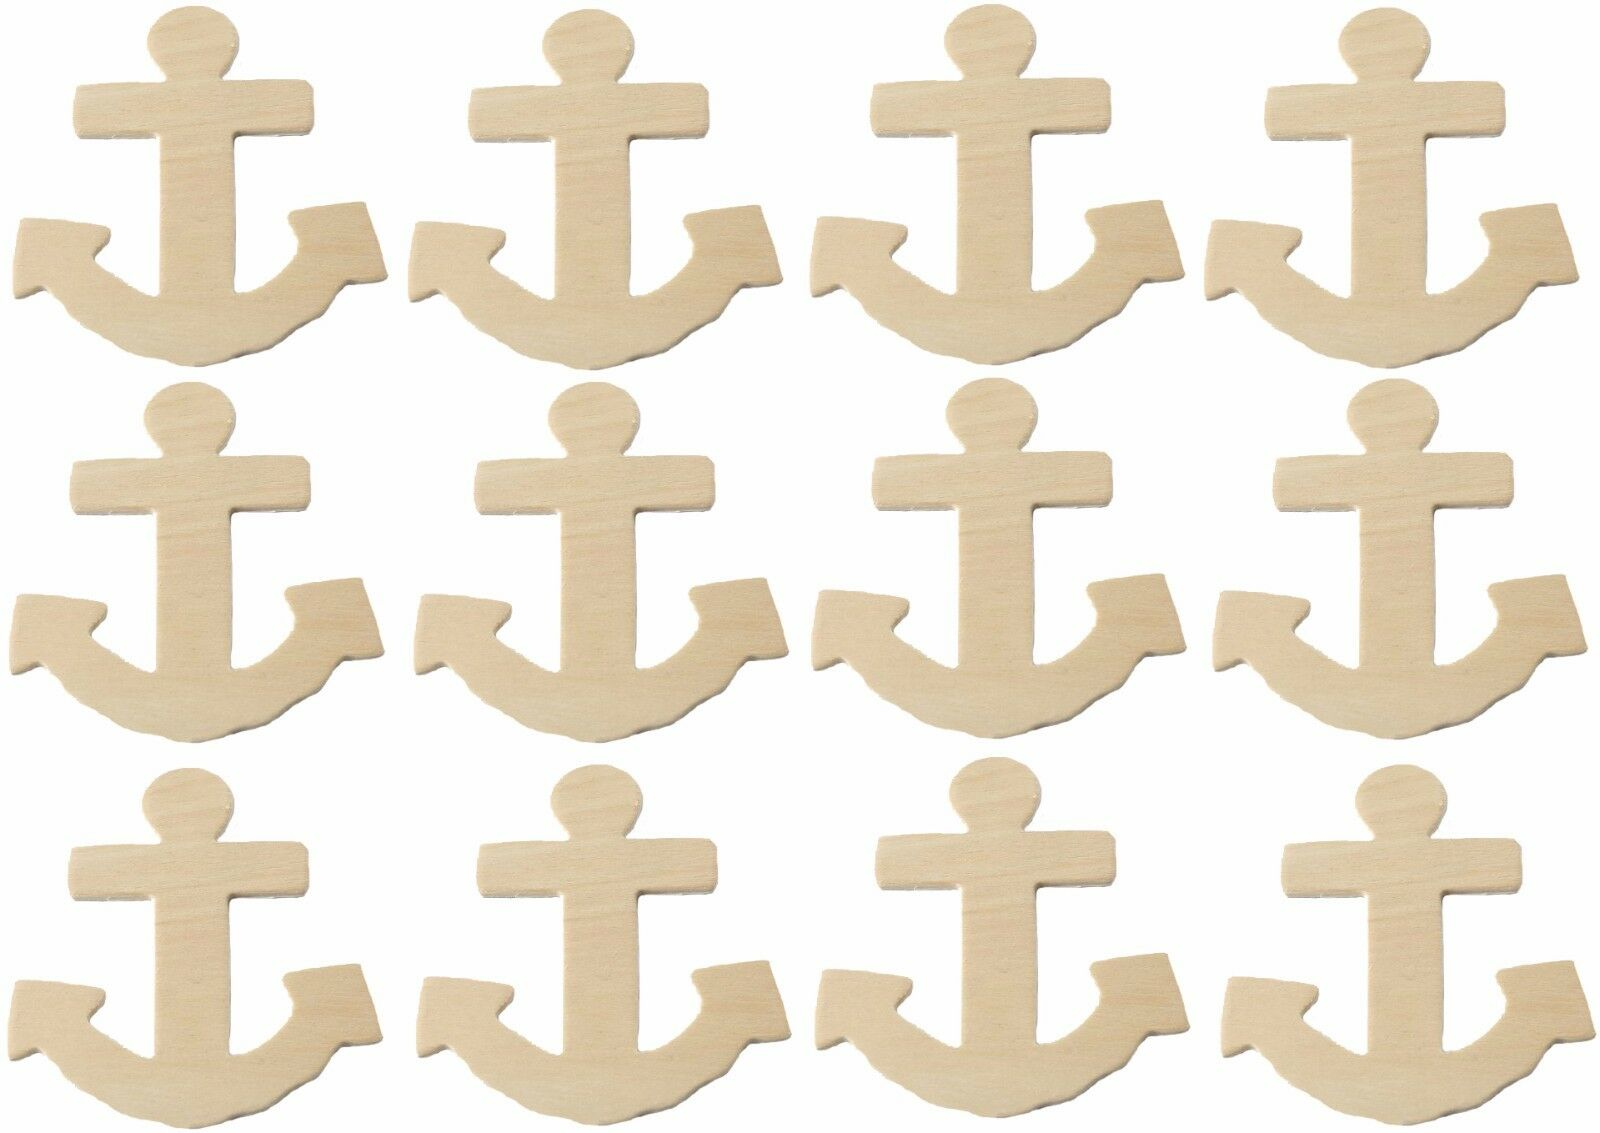 Creative Hobbies® Unfinished Wood Anchor Cutout Shapes, 4 Inch tall, pack of 12 Crafting Pieces